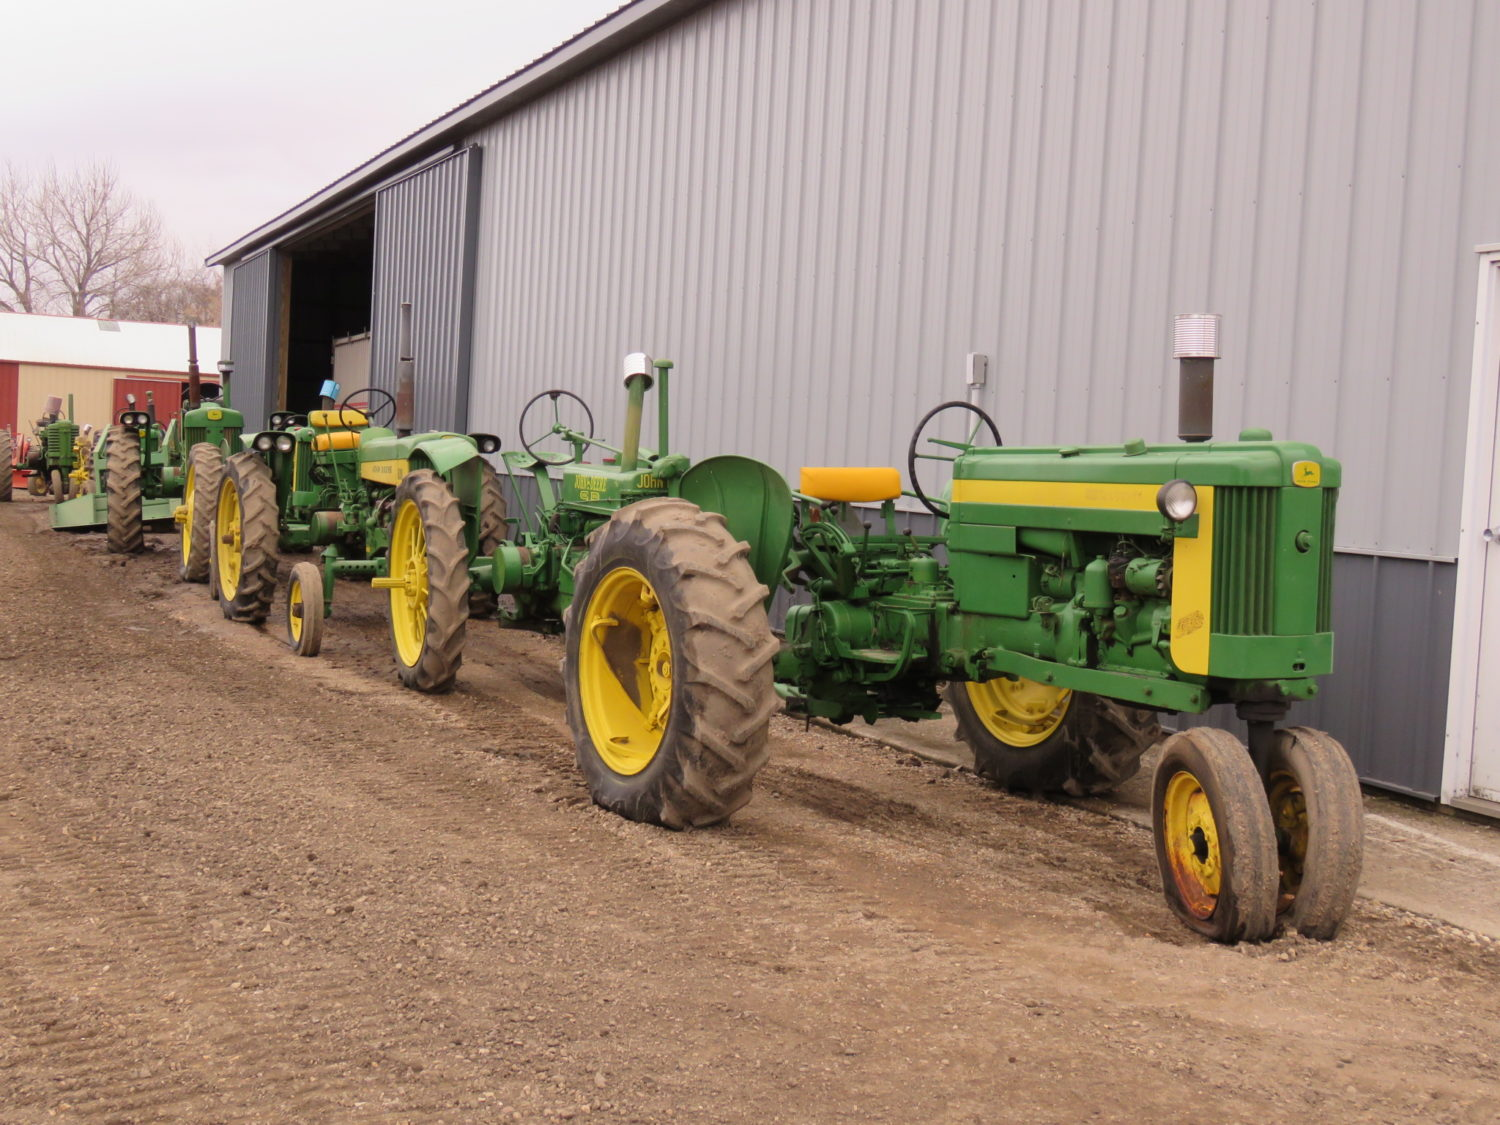 Day 1- Antique Tractors, Farm Equipment, Toys, & More- The James Graham Collection - image 6